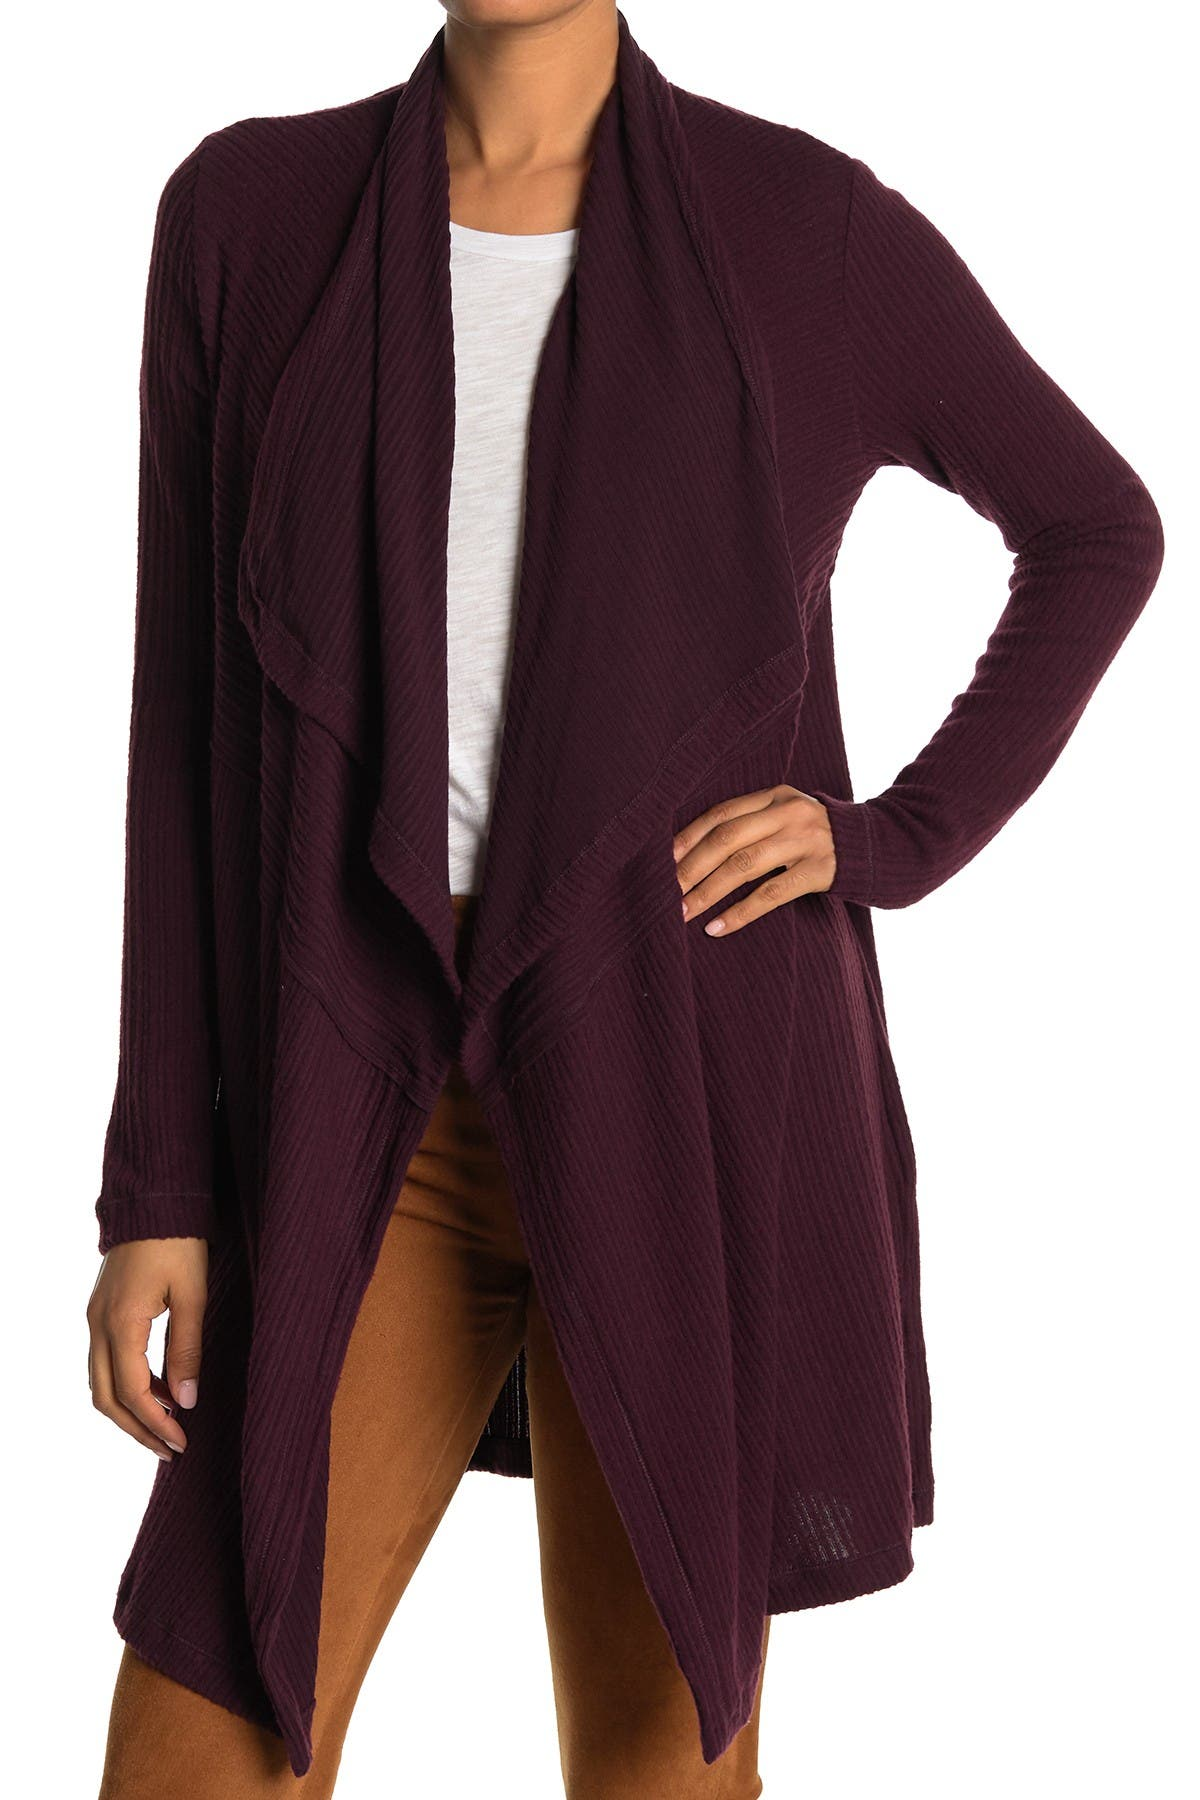 Image of H By Bordeaux Mix Rib Cozy Waterfall Cardigan